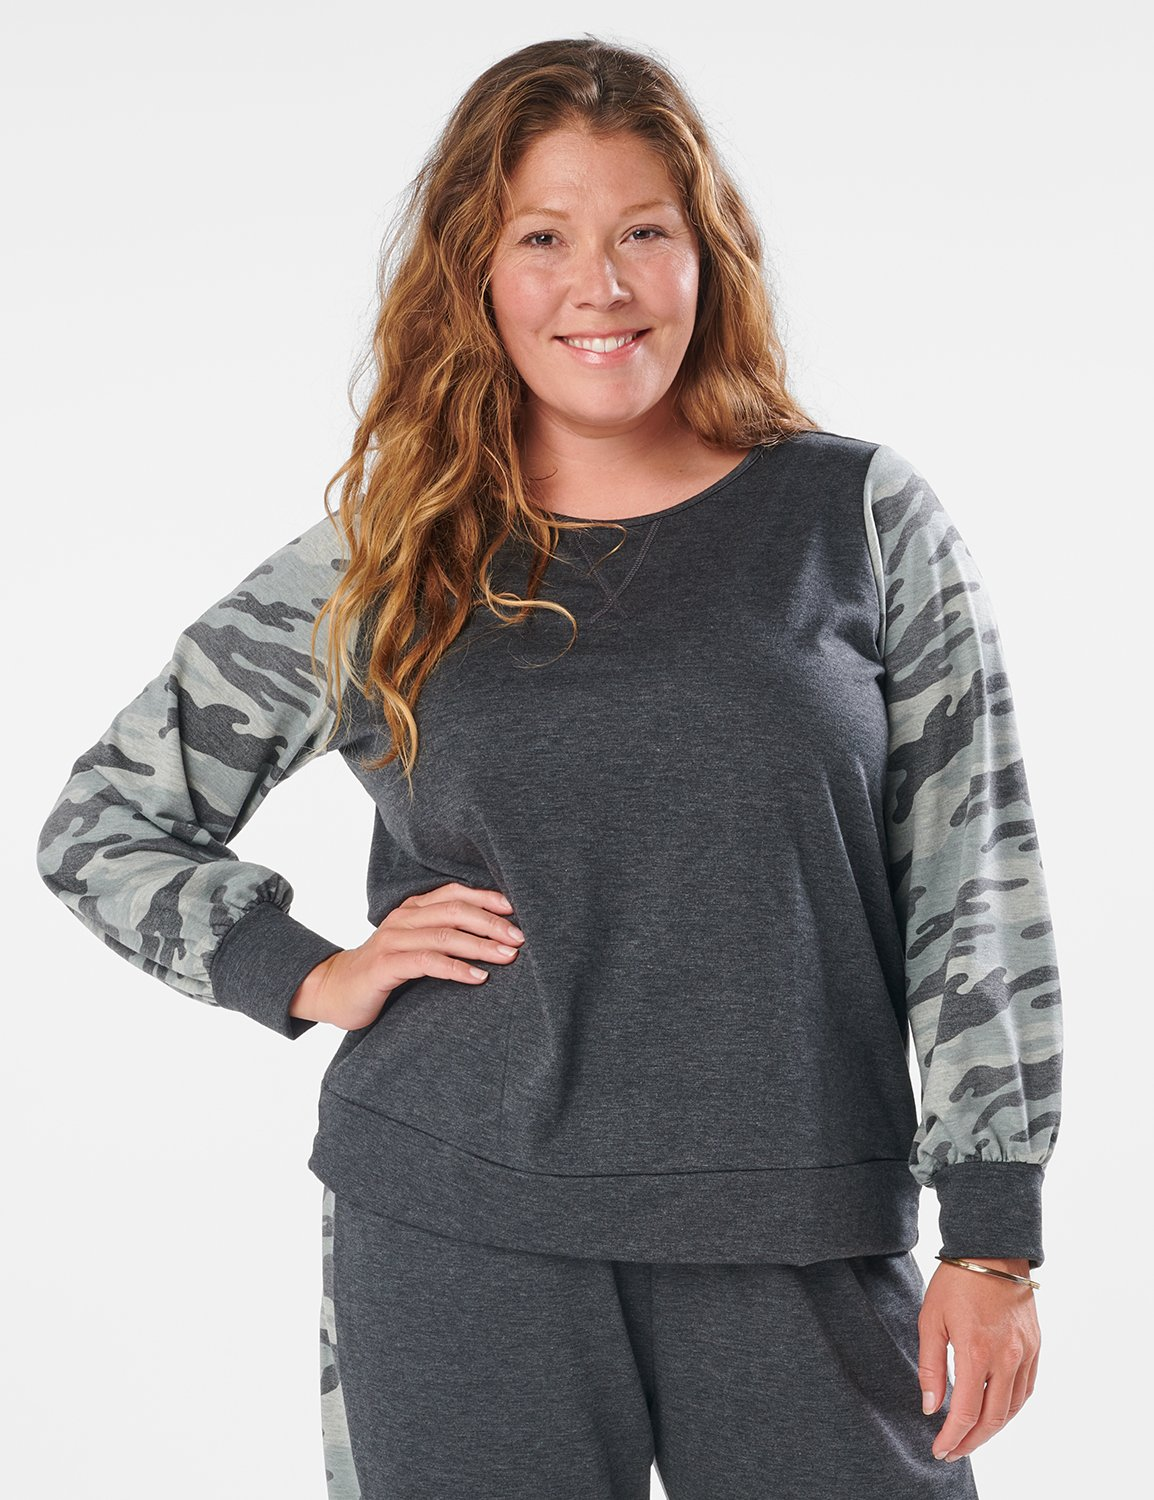 Camouflage Mixed Print Knit Top - Plus -Charcoal - Front